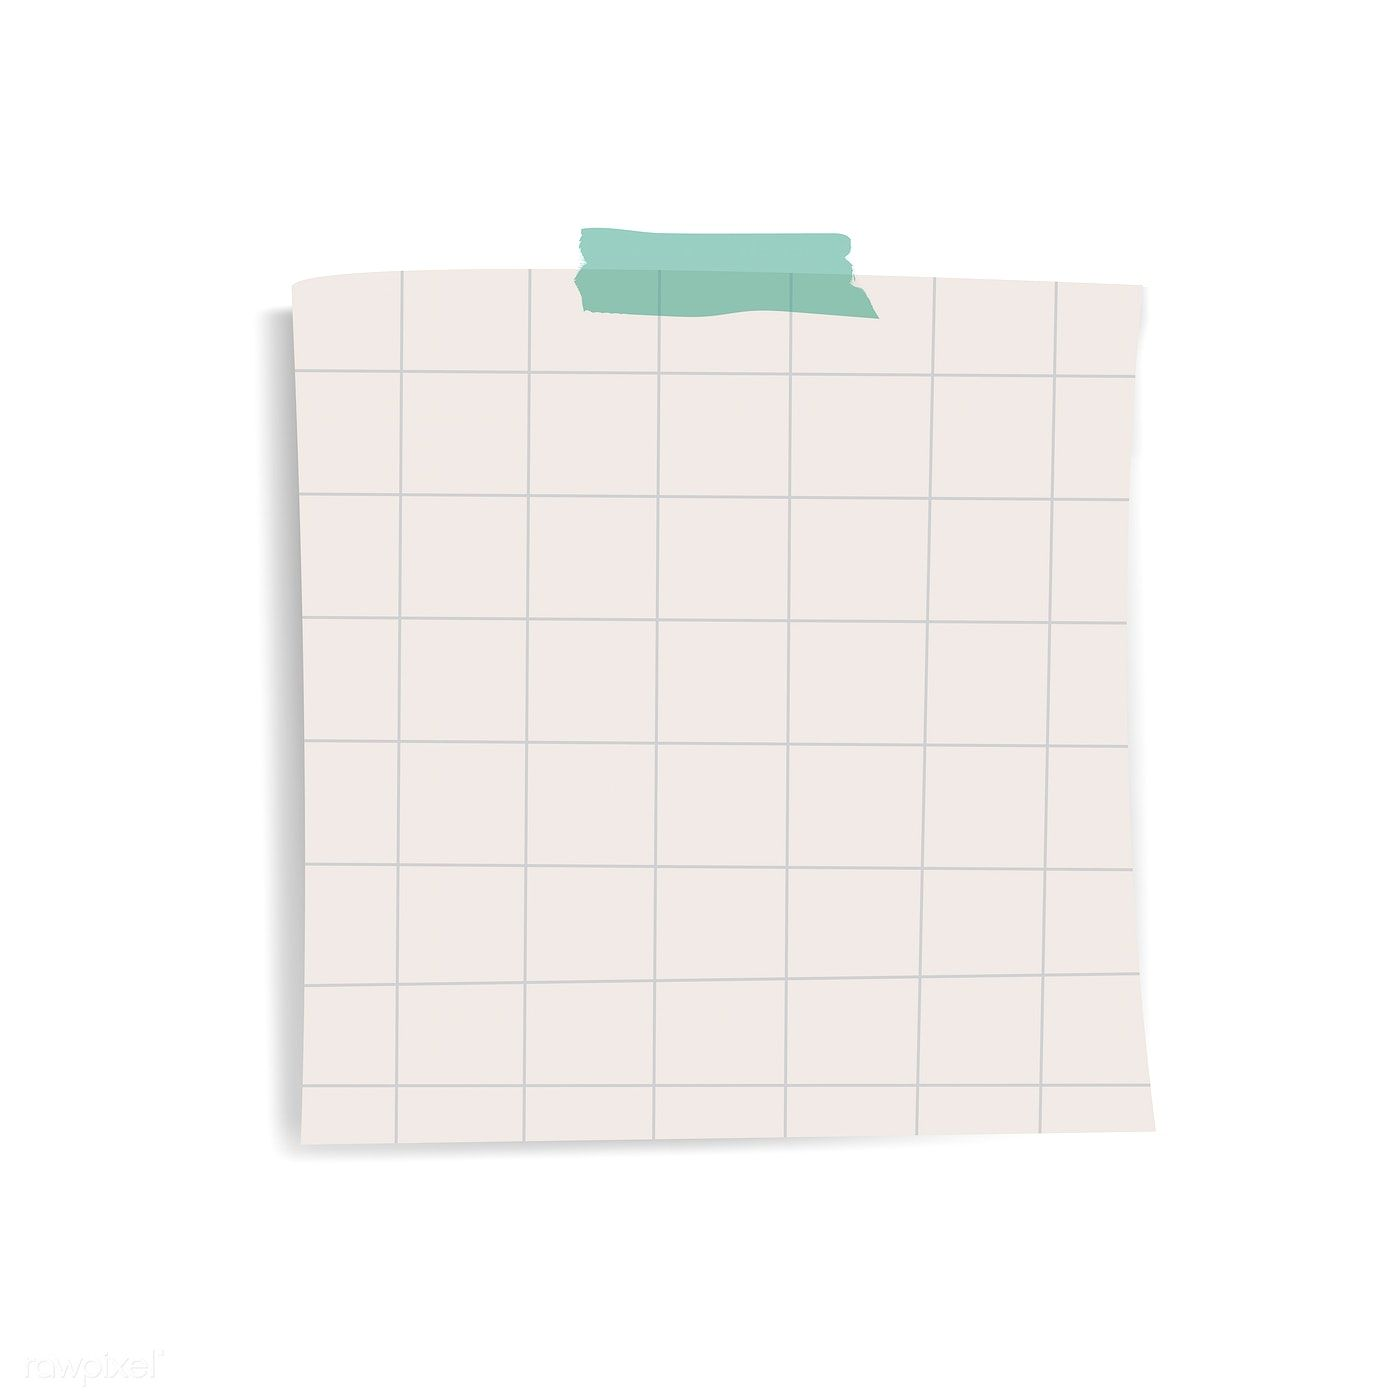 Blank Square Grid Reminder Paper Note Vector Free Image By Rawpixel Com Chayanit Note Paper Sticky Notes Paper Background Texture